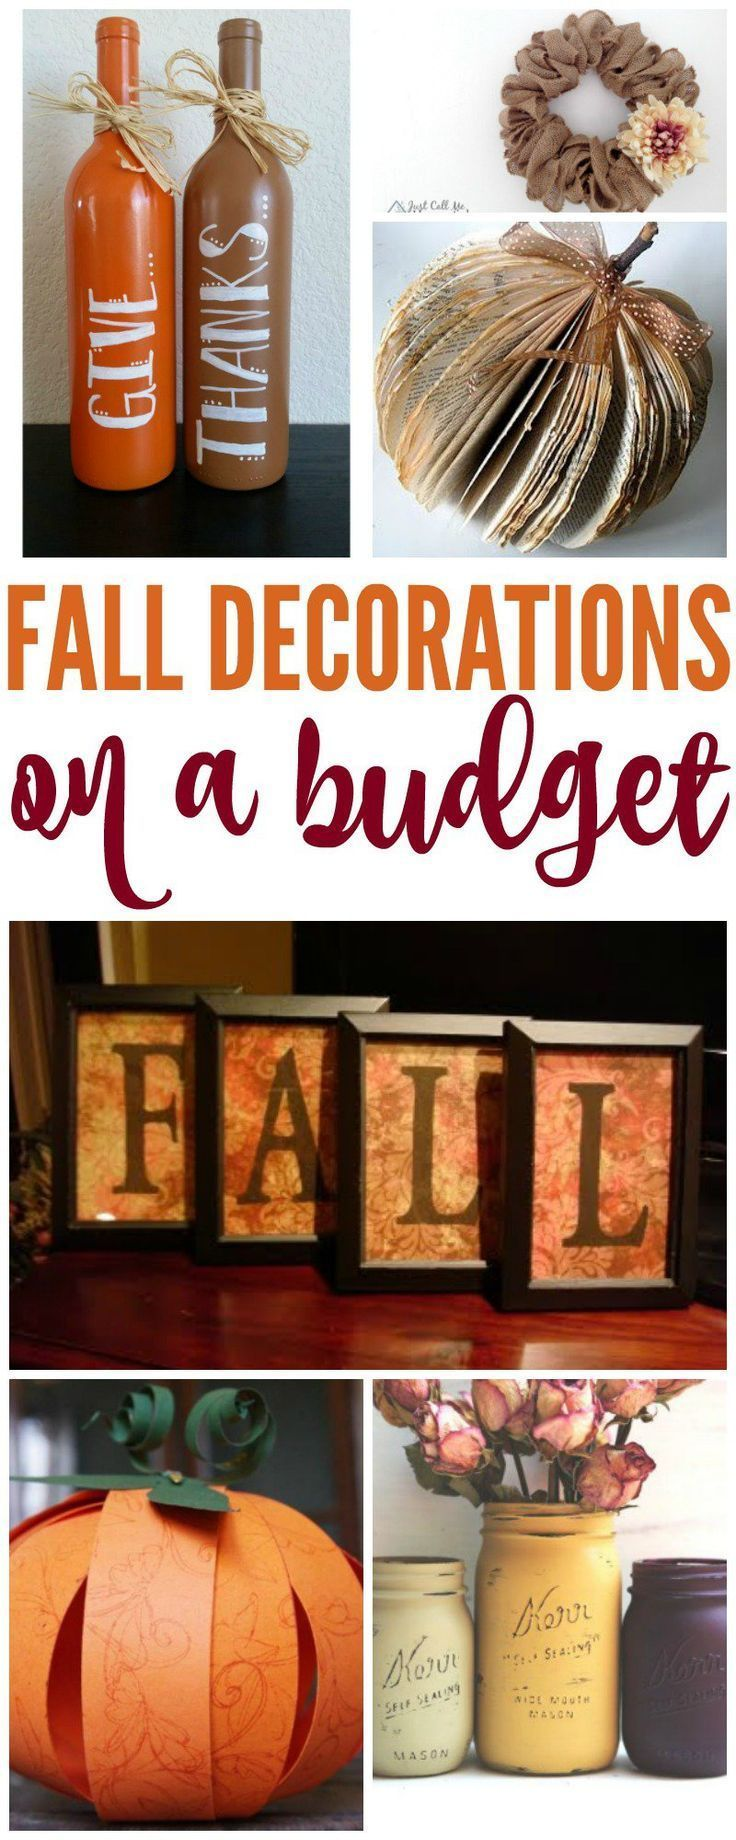 How To Make Fall Decorations On A Budget Diy Ideas And